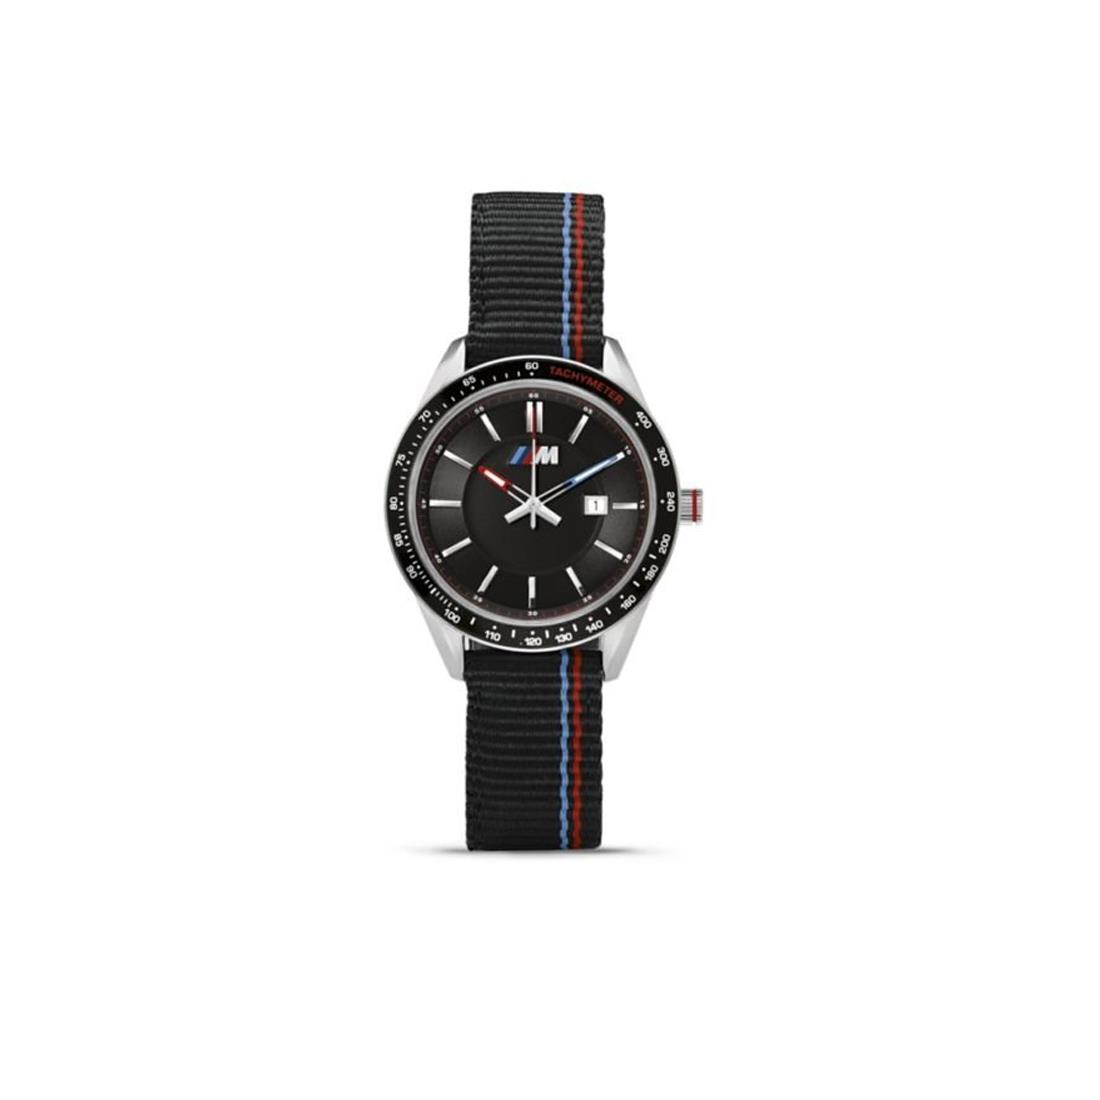 BMW Men's M Watch